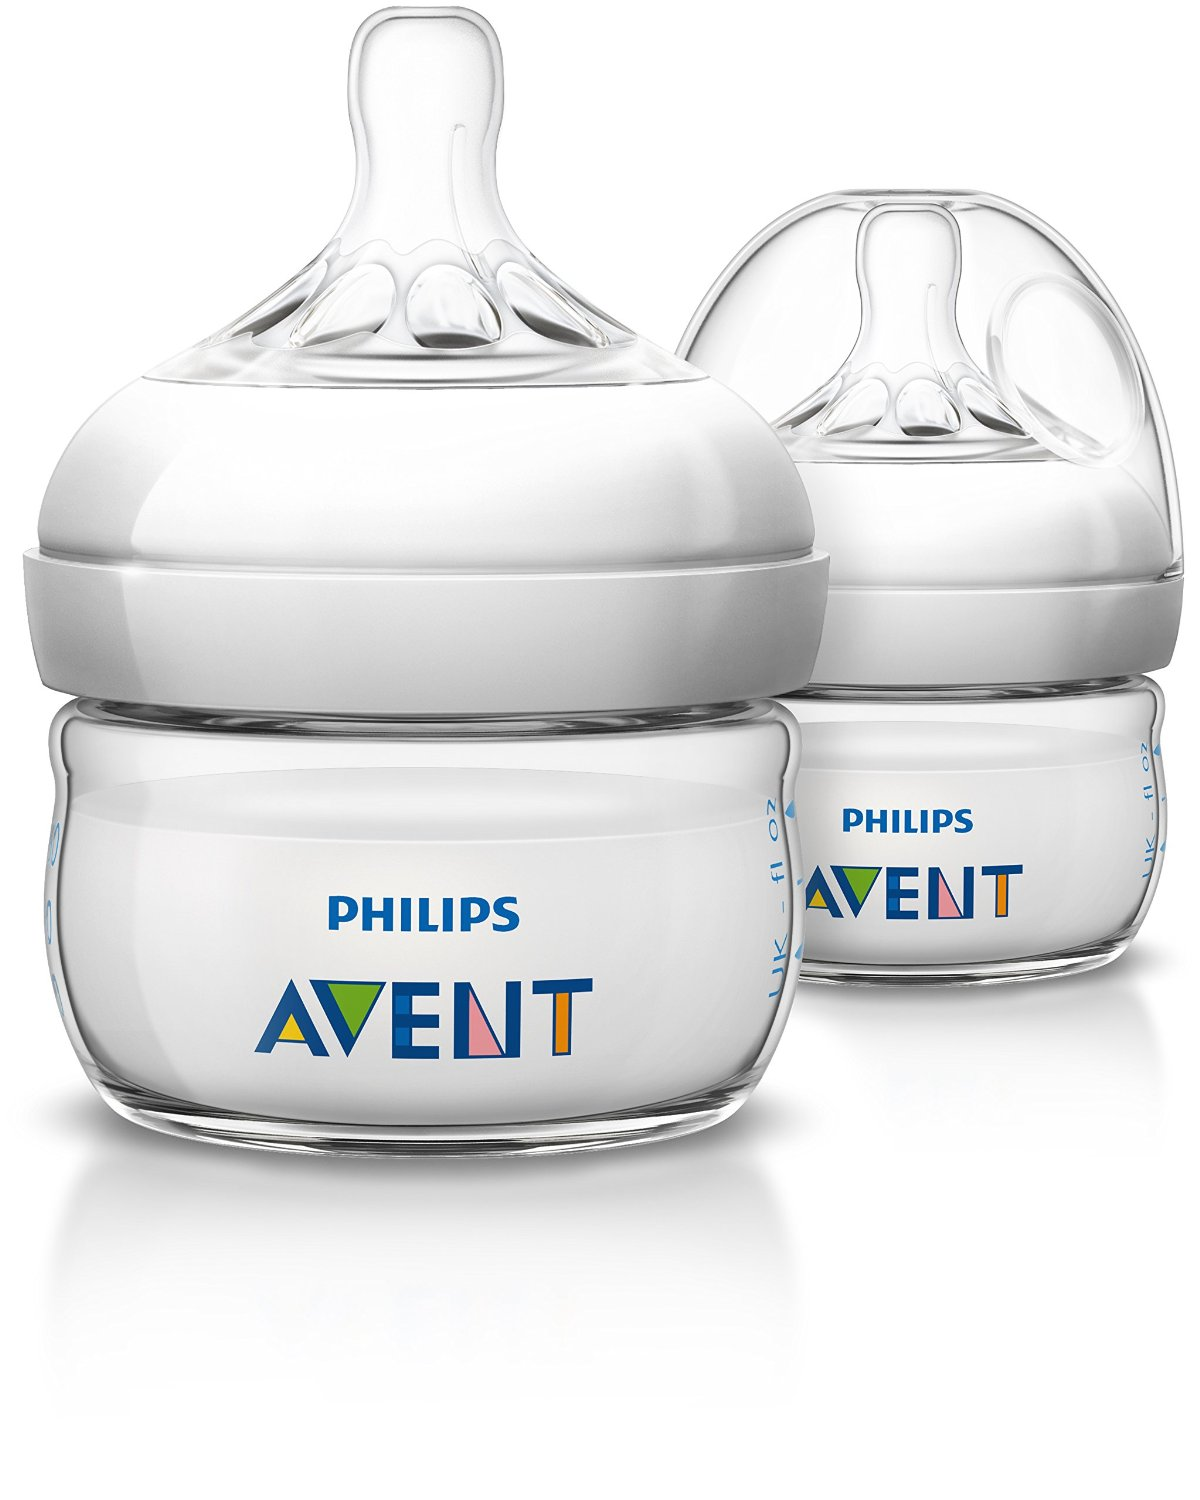 ขวดนม 2oz. Philips AVENT 2 Ounce BPA Free Natural Polypropylene Bottles 2-Pack แพคคู่